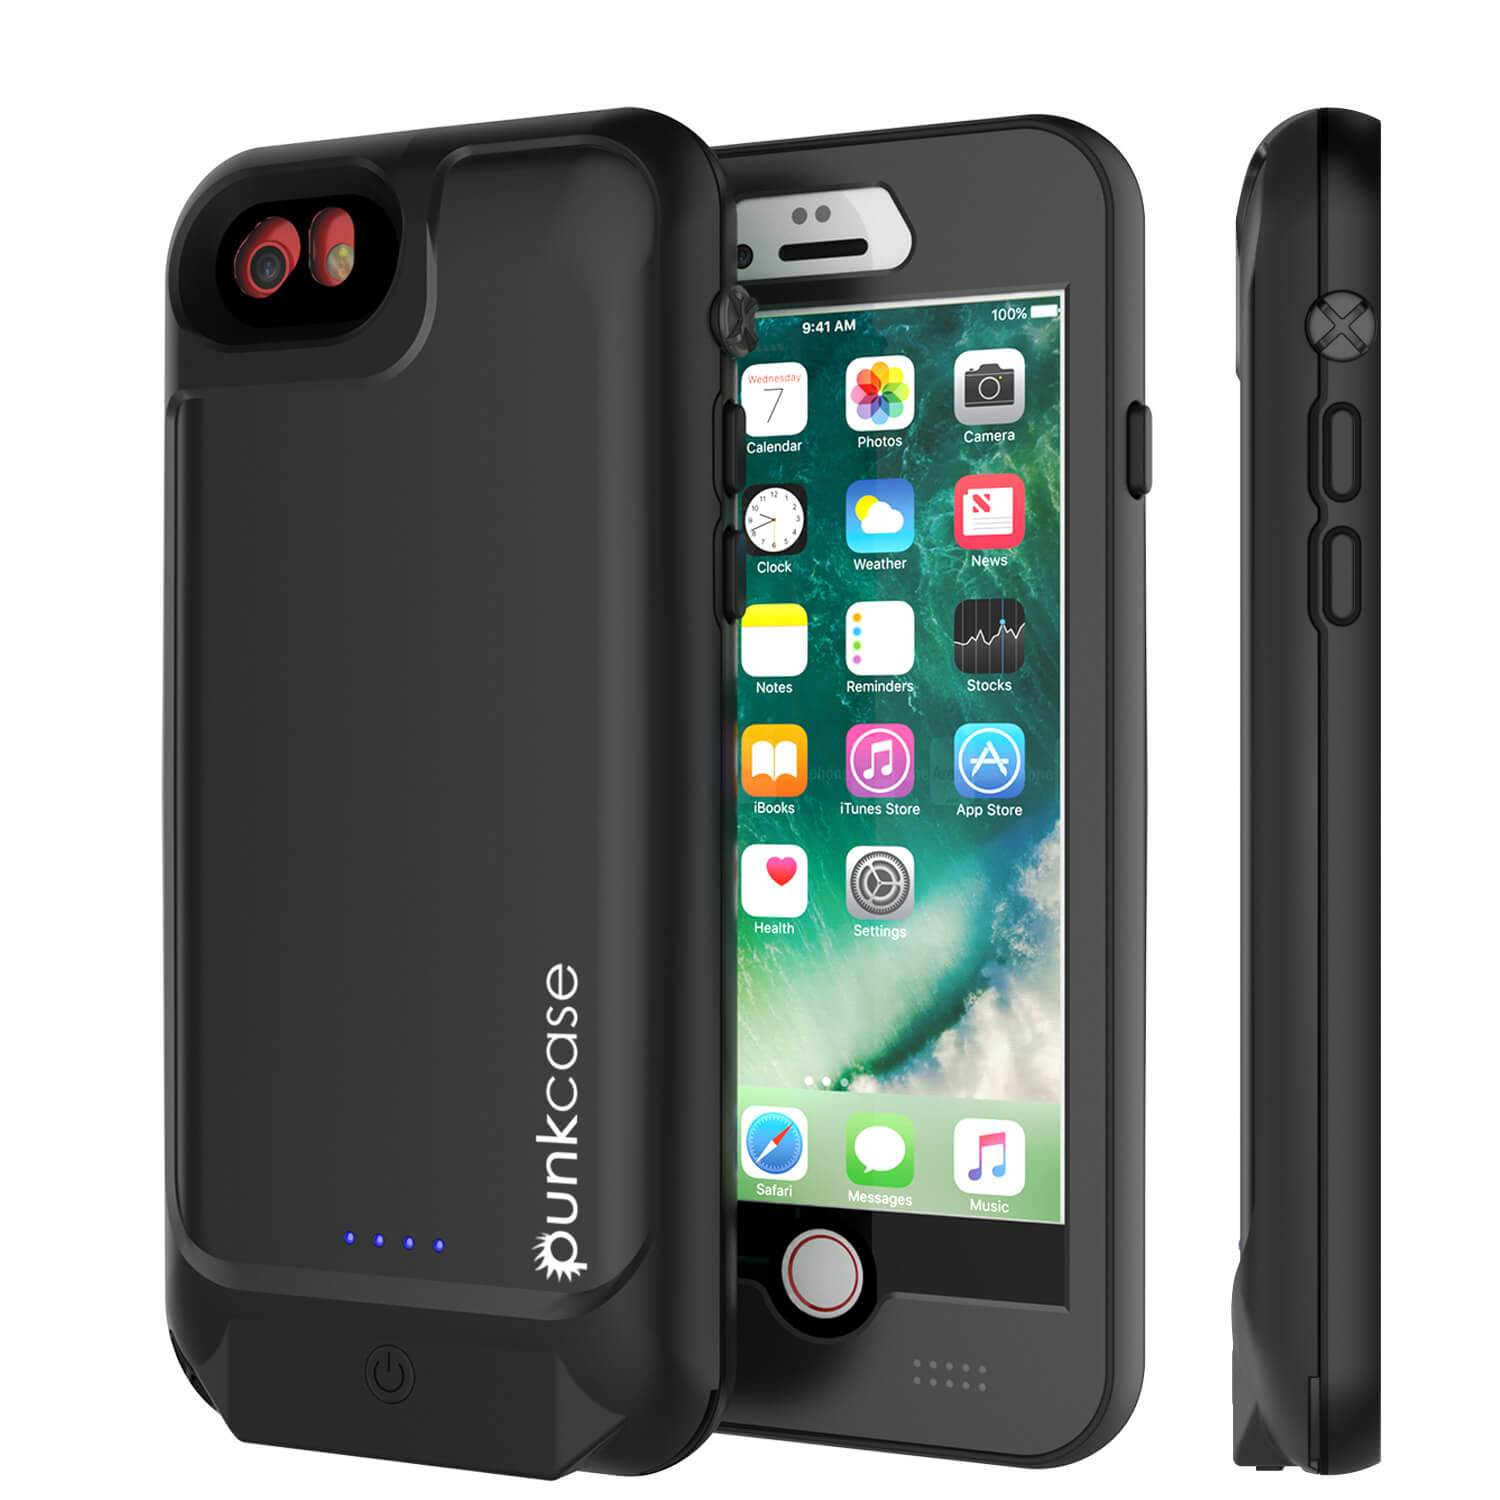 PunkJuice iPhone 7 Battery Case Black - Waterproof Slim Power Juice Bank with 2750mAh